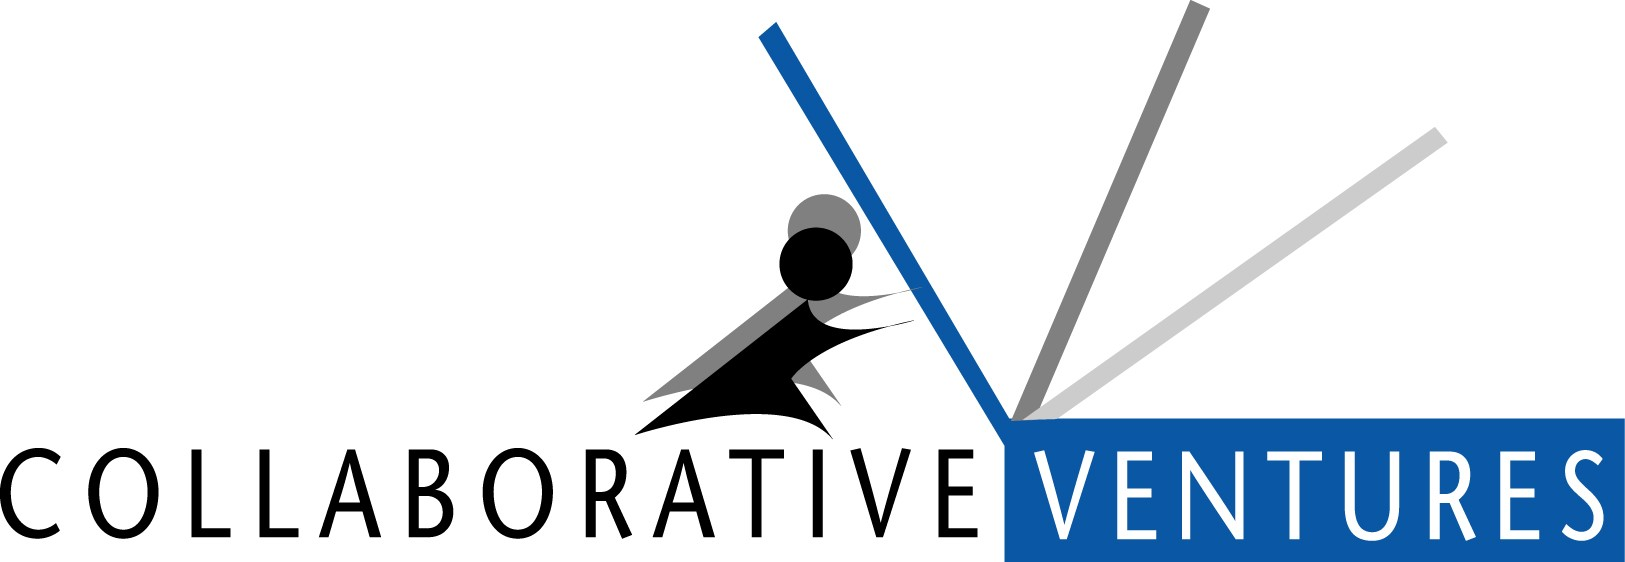 Collaborative Venture